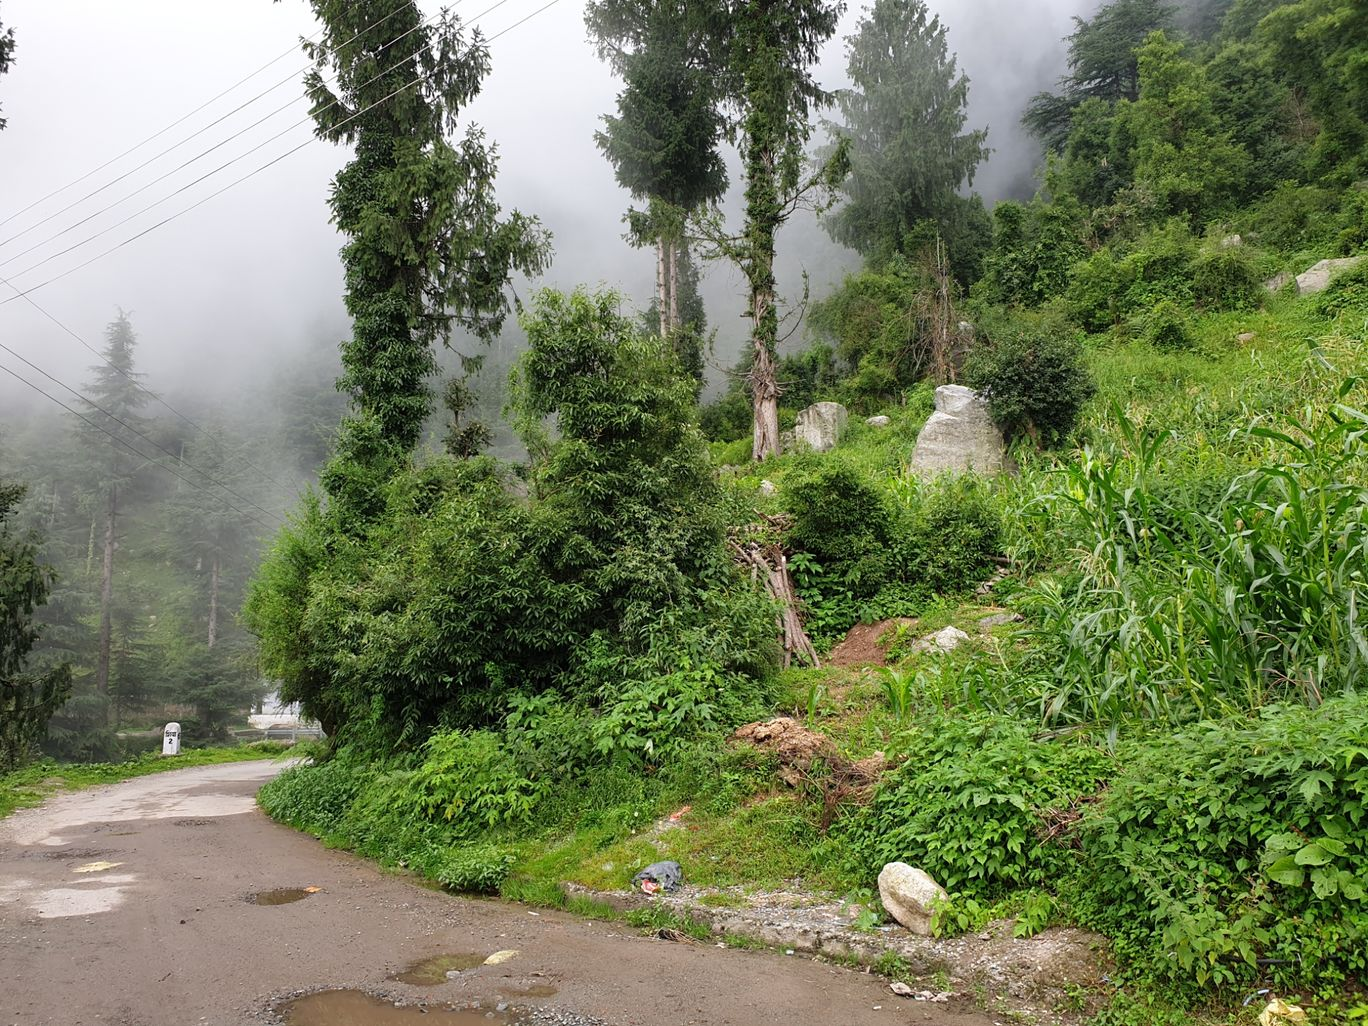 Photo of Dalhousie By dhruv